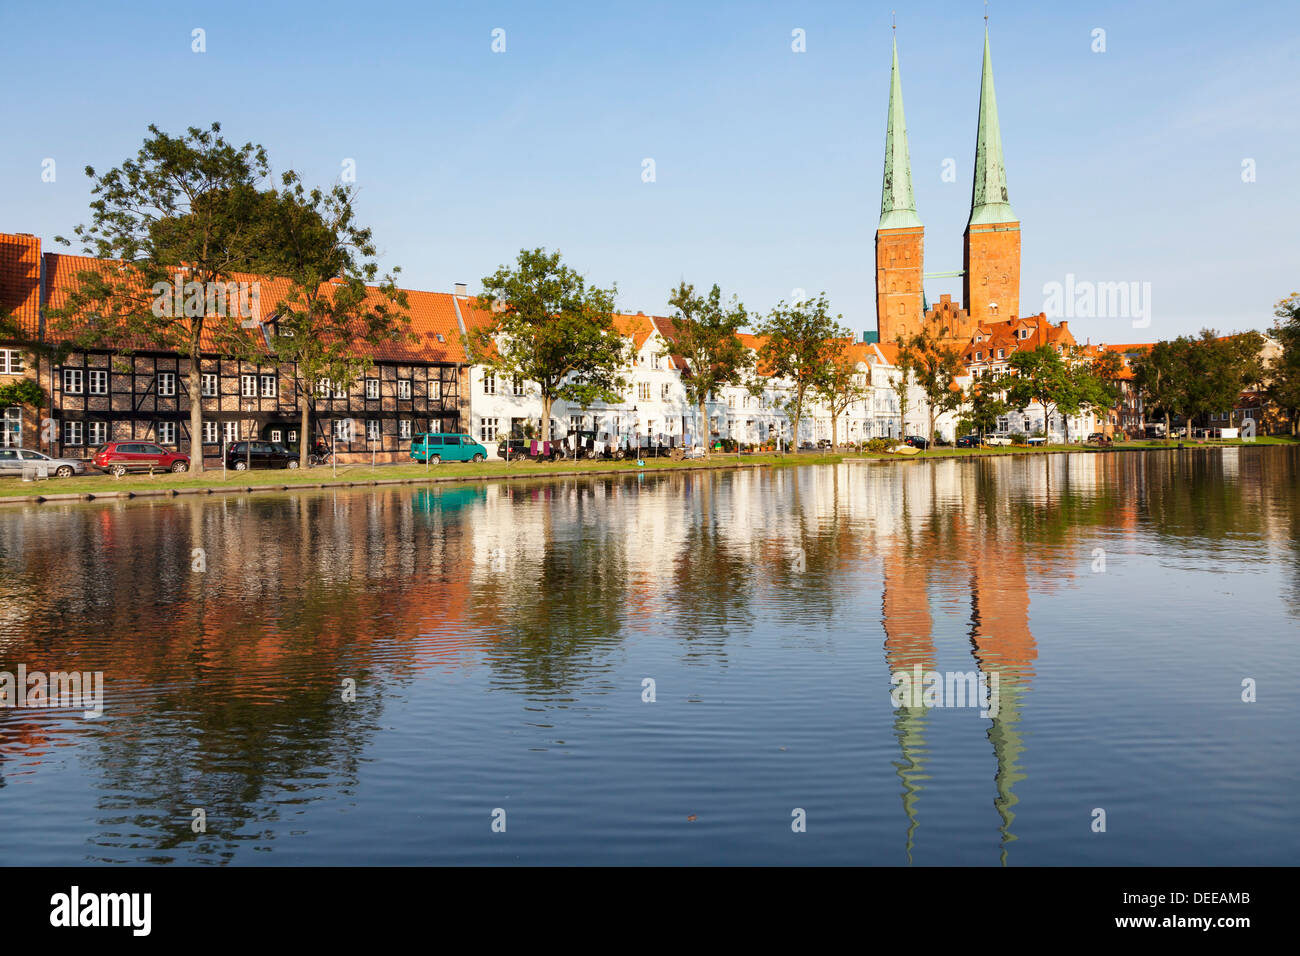 Cathedral reflected in the River Trave, Stadttrave, Lubeck, Schleswig Holstein, Germany, Europe - Stock Image